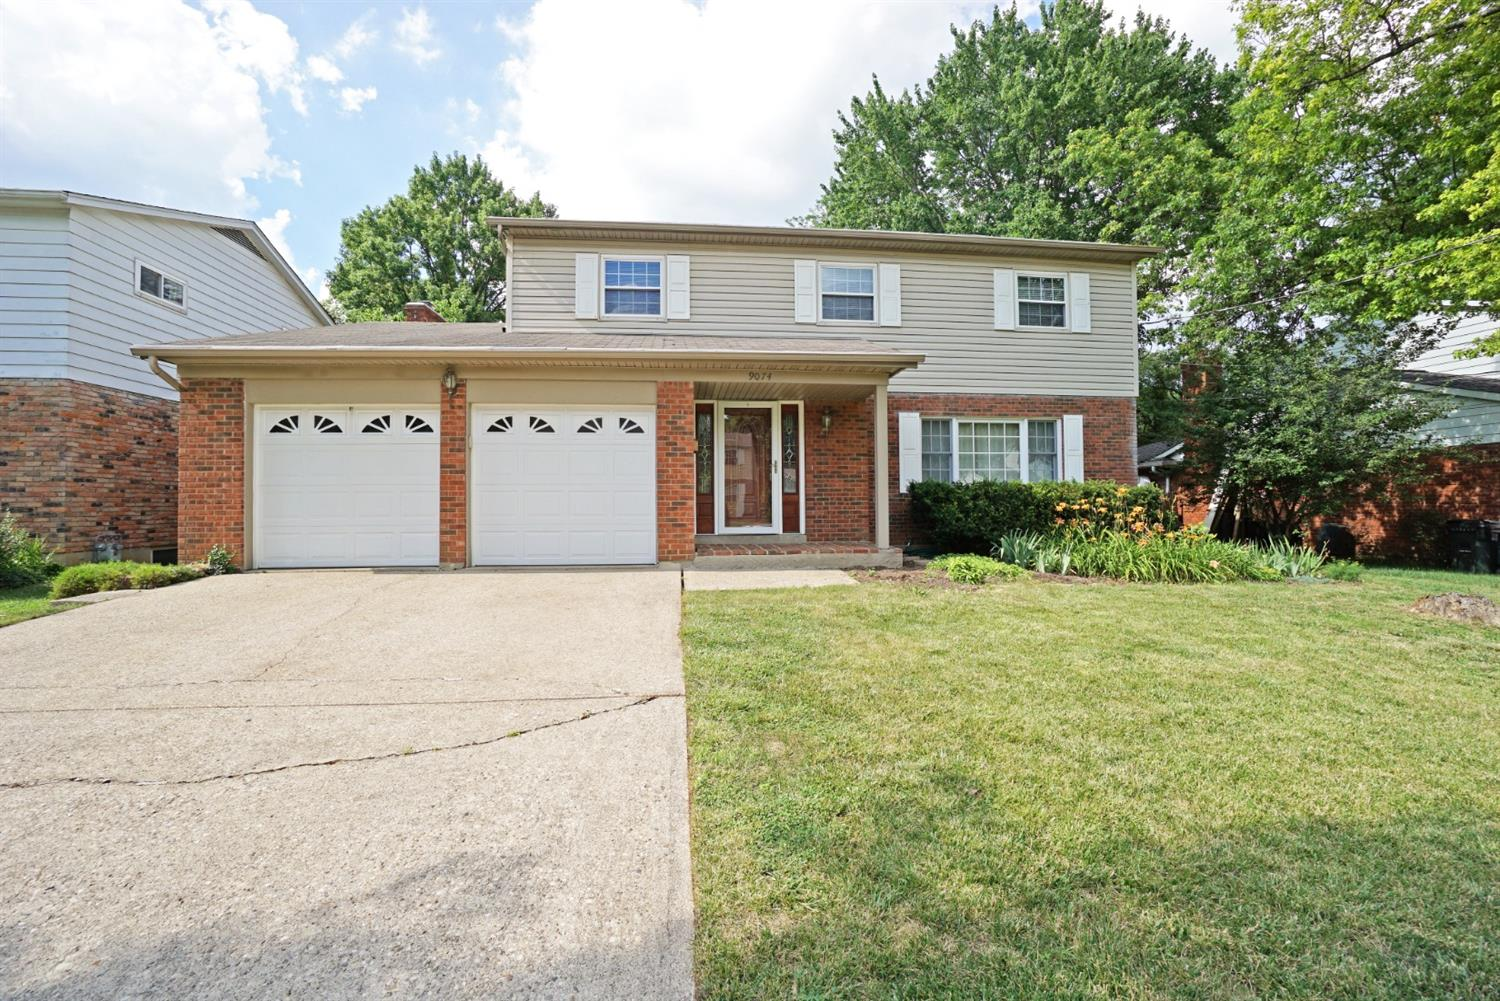 Property for sale at 9074 Fontainebleau Terrace, Springfield Twp.,  Ohio 45231